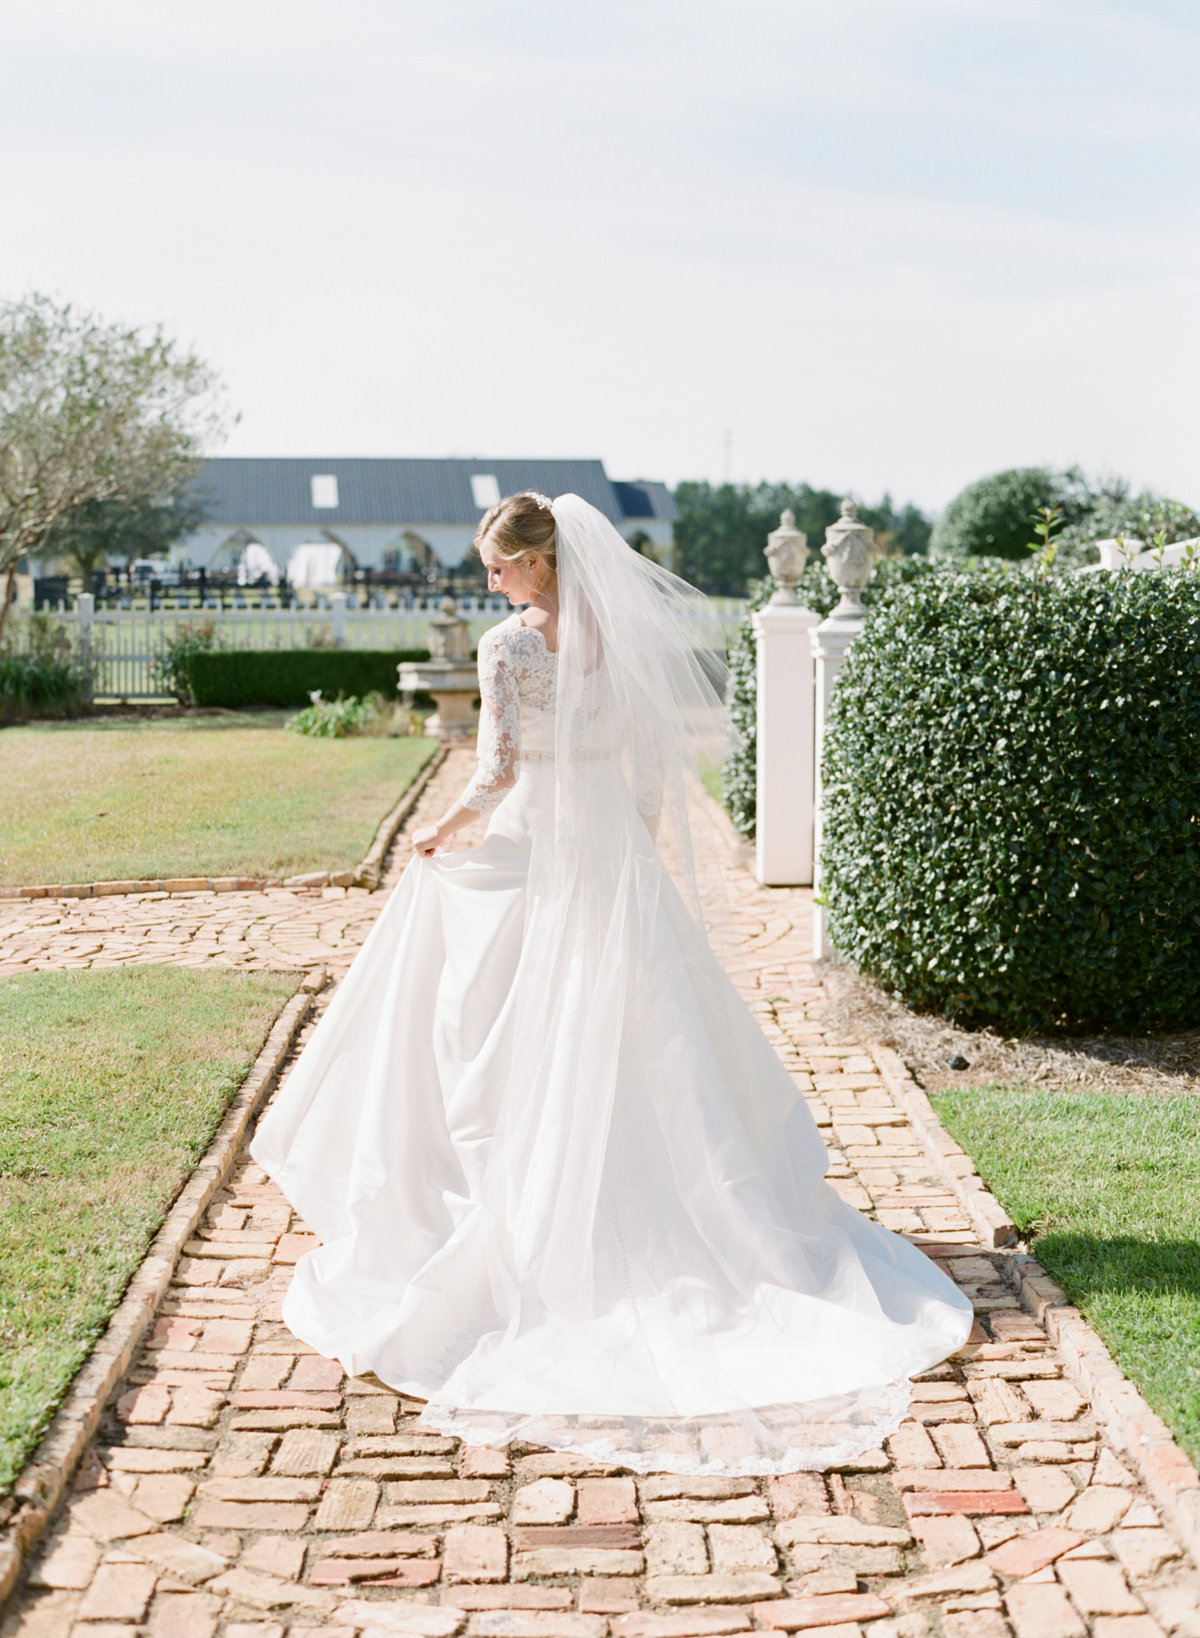 CourtneyWoodhamPhoto-216